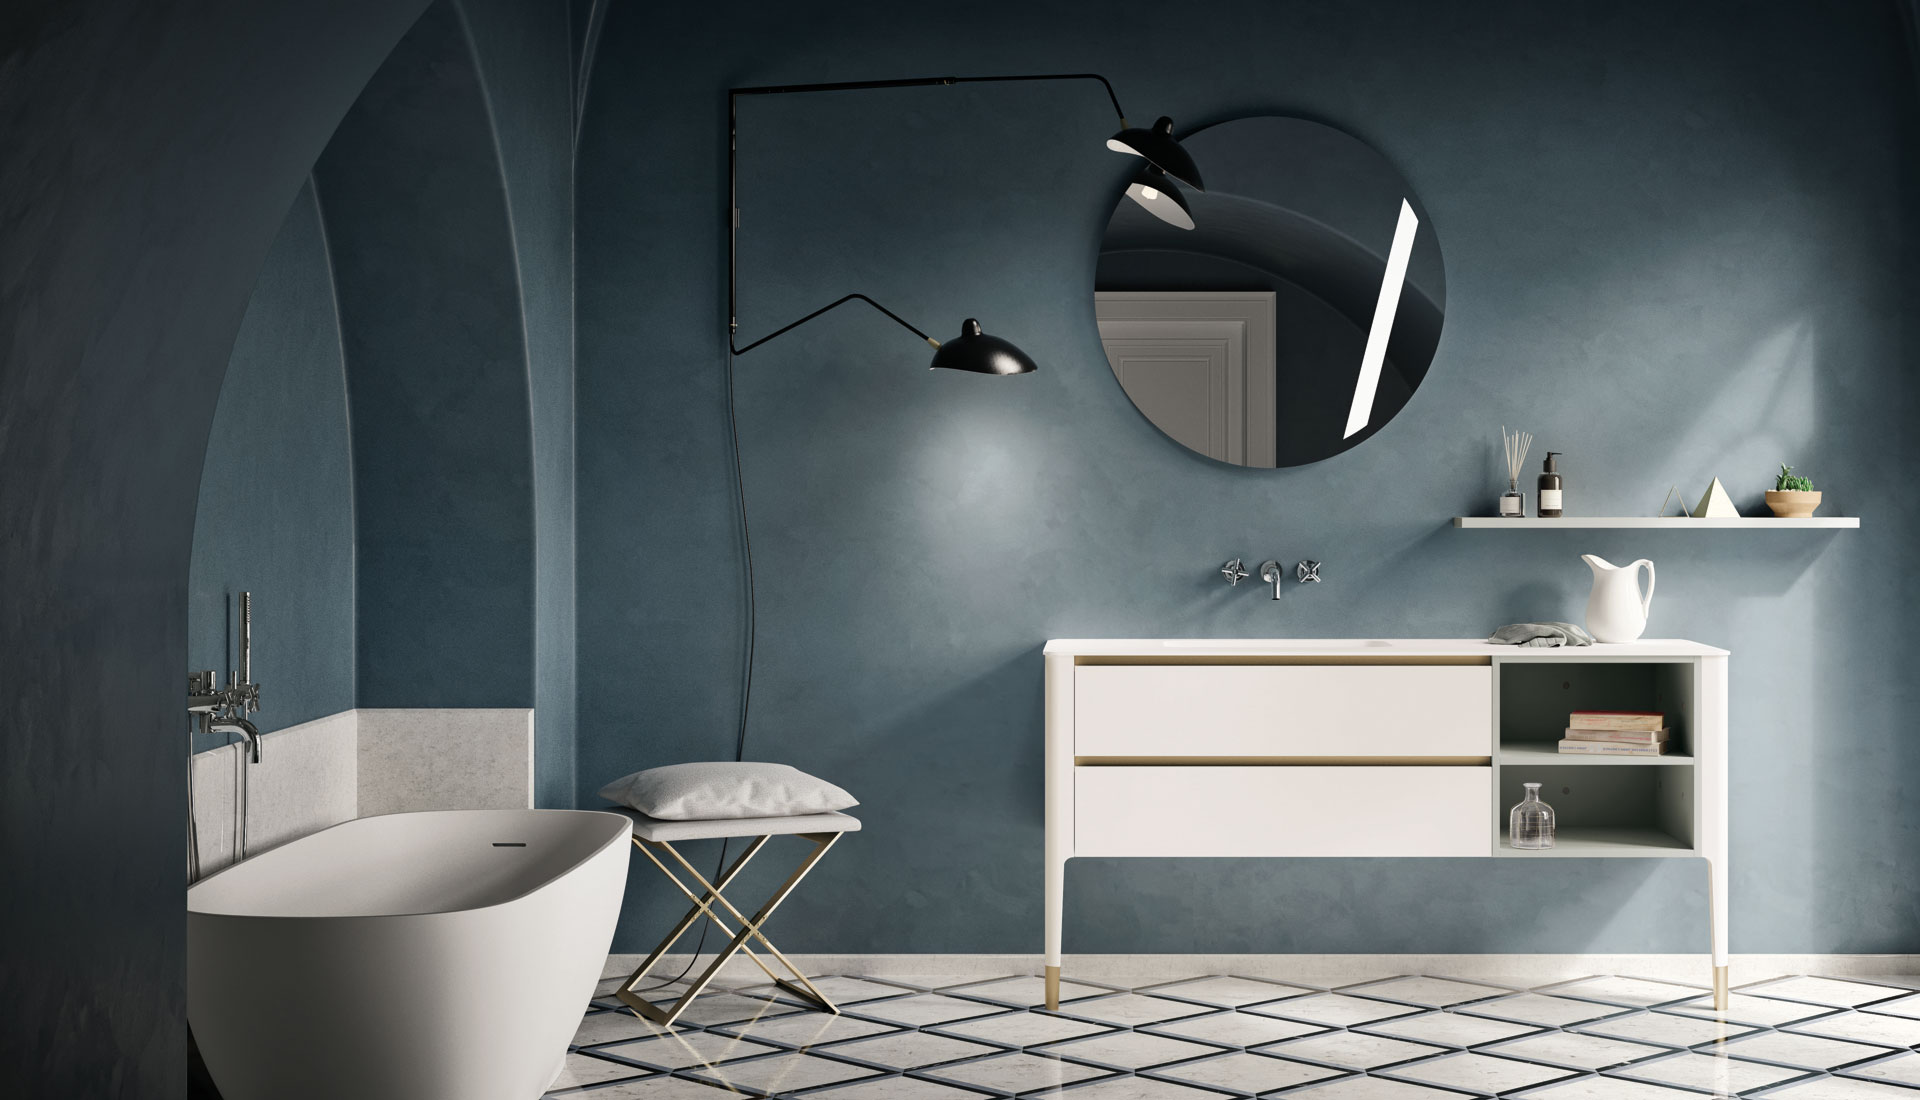 The ART of bathroom - Puntotre Arredobagno